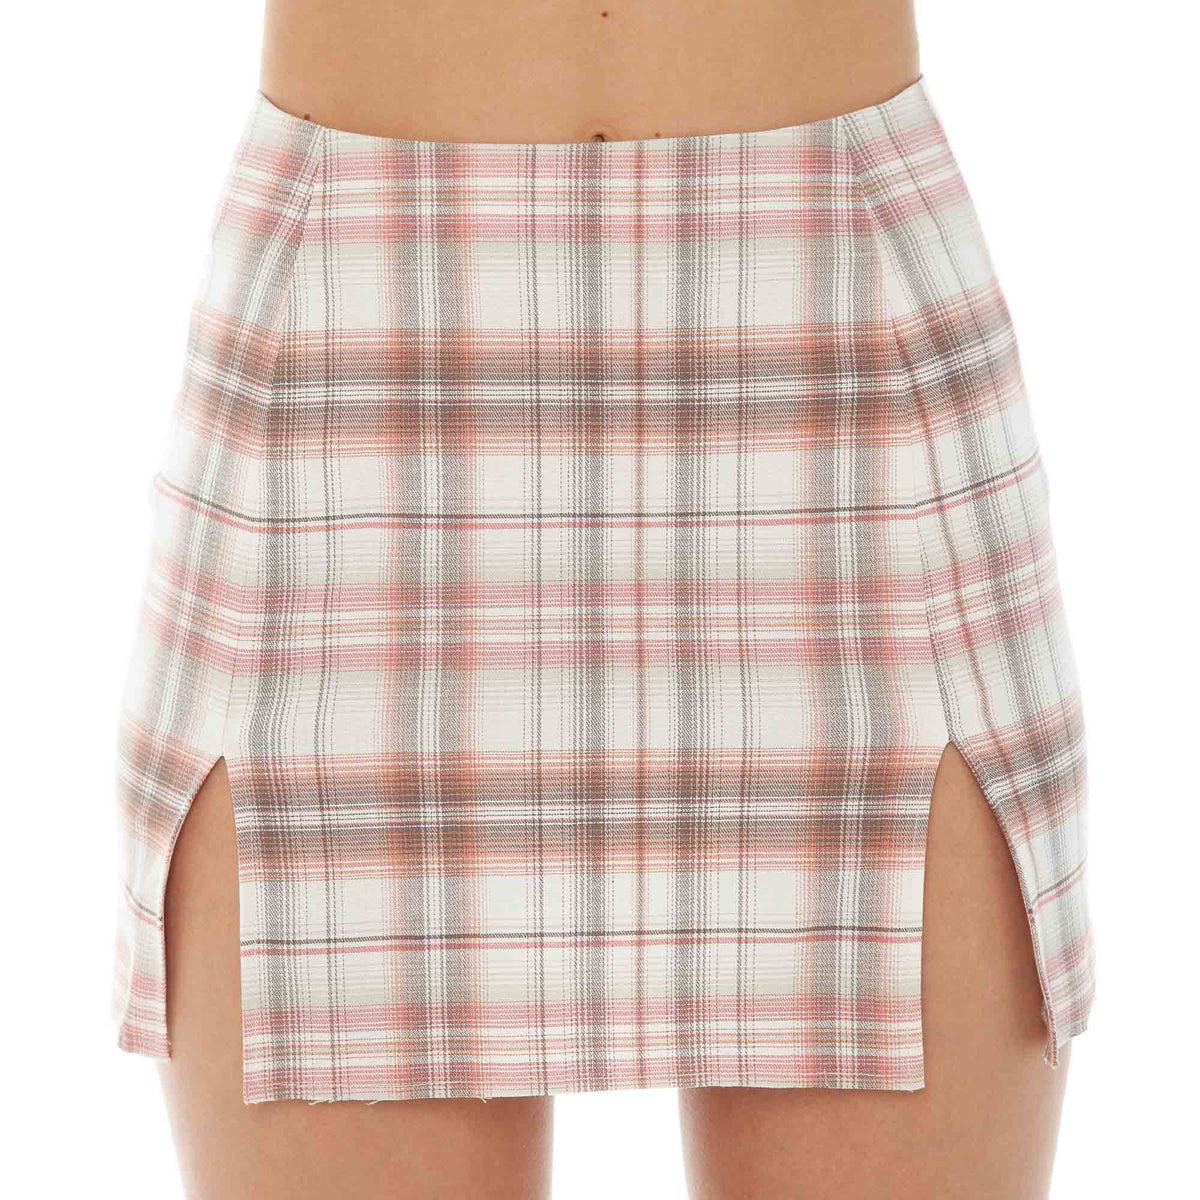 Are You Am I - Trin Skirt